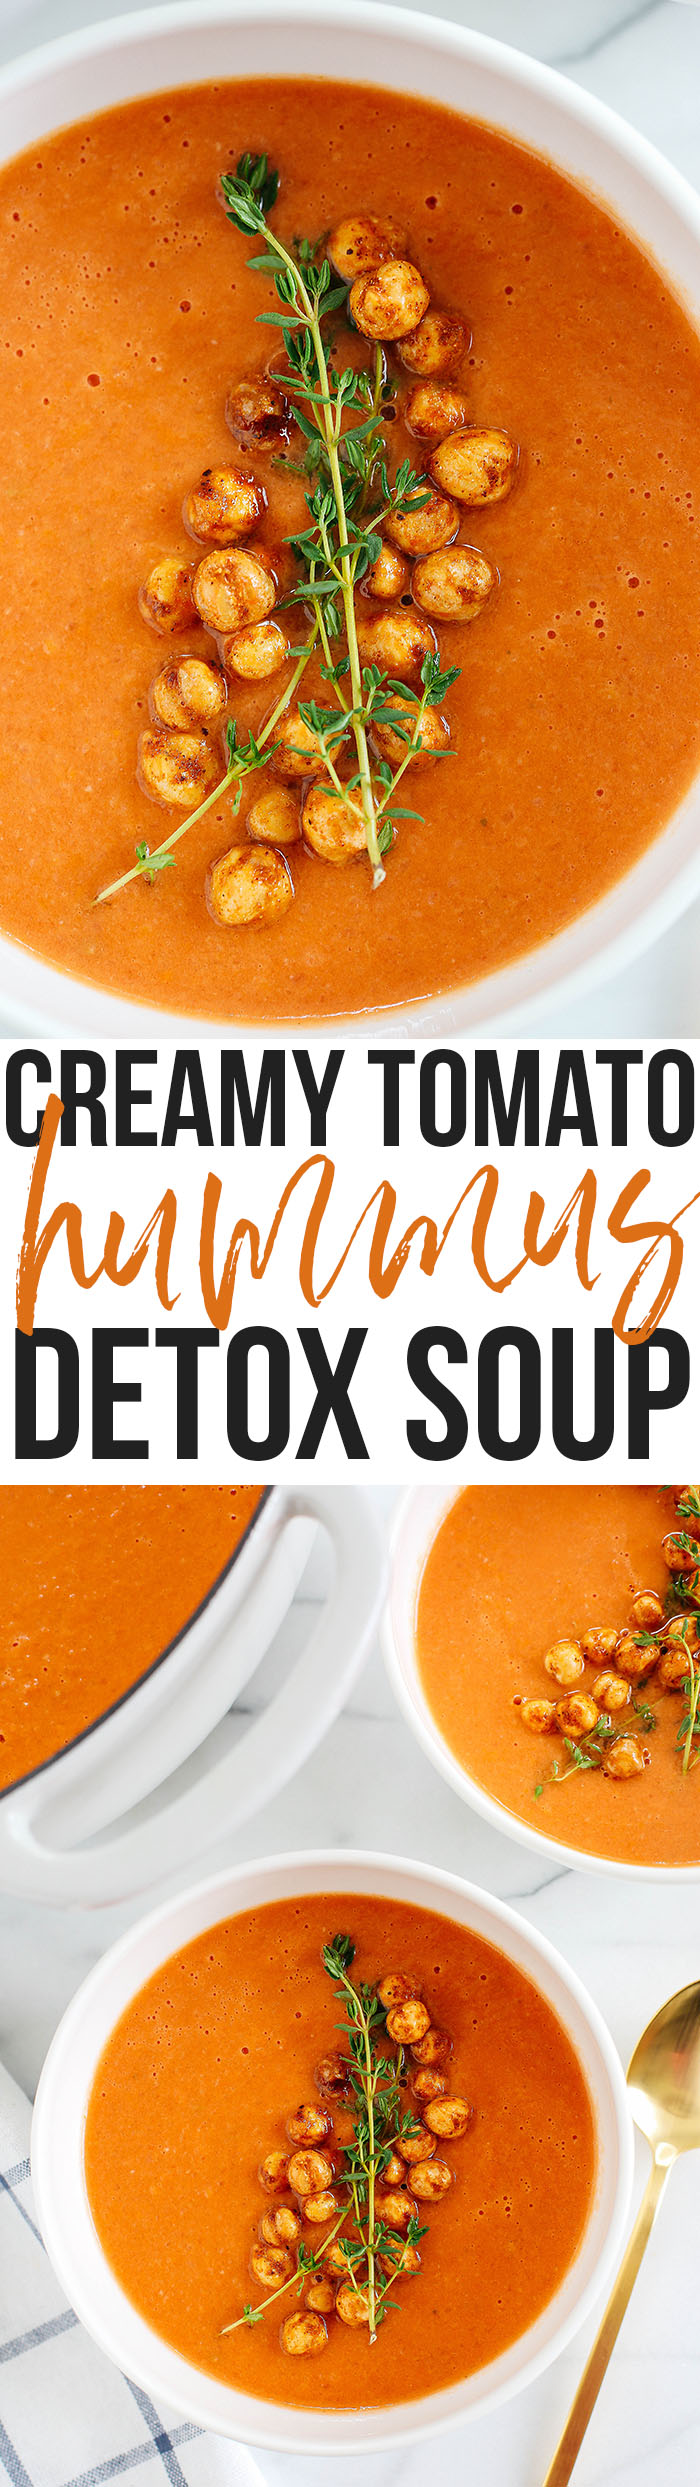 This Creamy Tomato Hummus Detox Soup is the perfect remedy for cold and flu season that is filled with tons of antioxidants and immune-boosting ingredients to keep you healthy all season long!